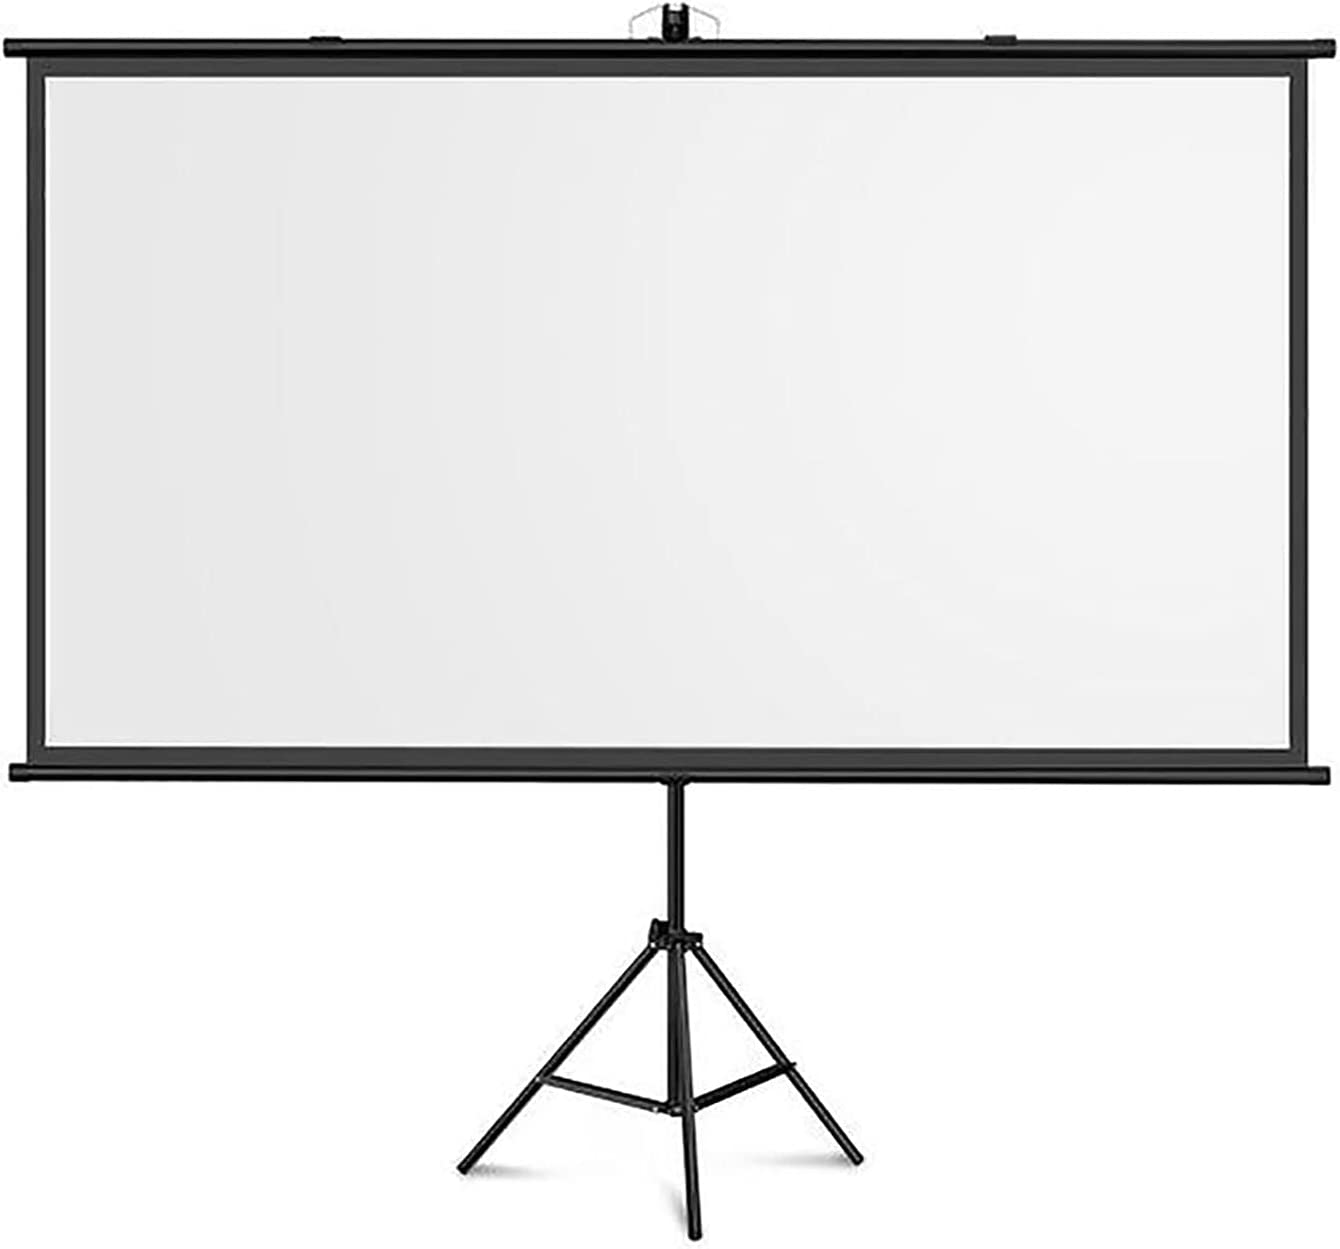 YFF-Corrimano Projector Screen with Stand - Indoor and Outdoor Projection Screen - 4:3/16:9 HD Wrinkle-Free Tripod Screen Portable Lightweight Projector Screen, for Movie or Office Presentation